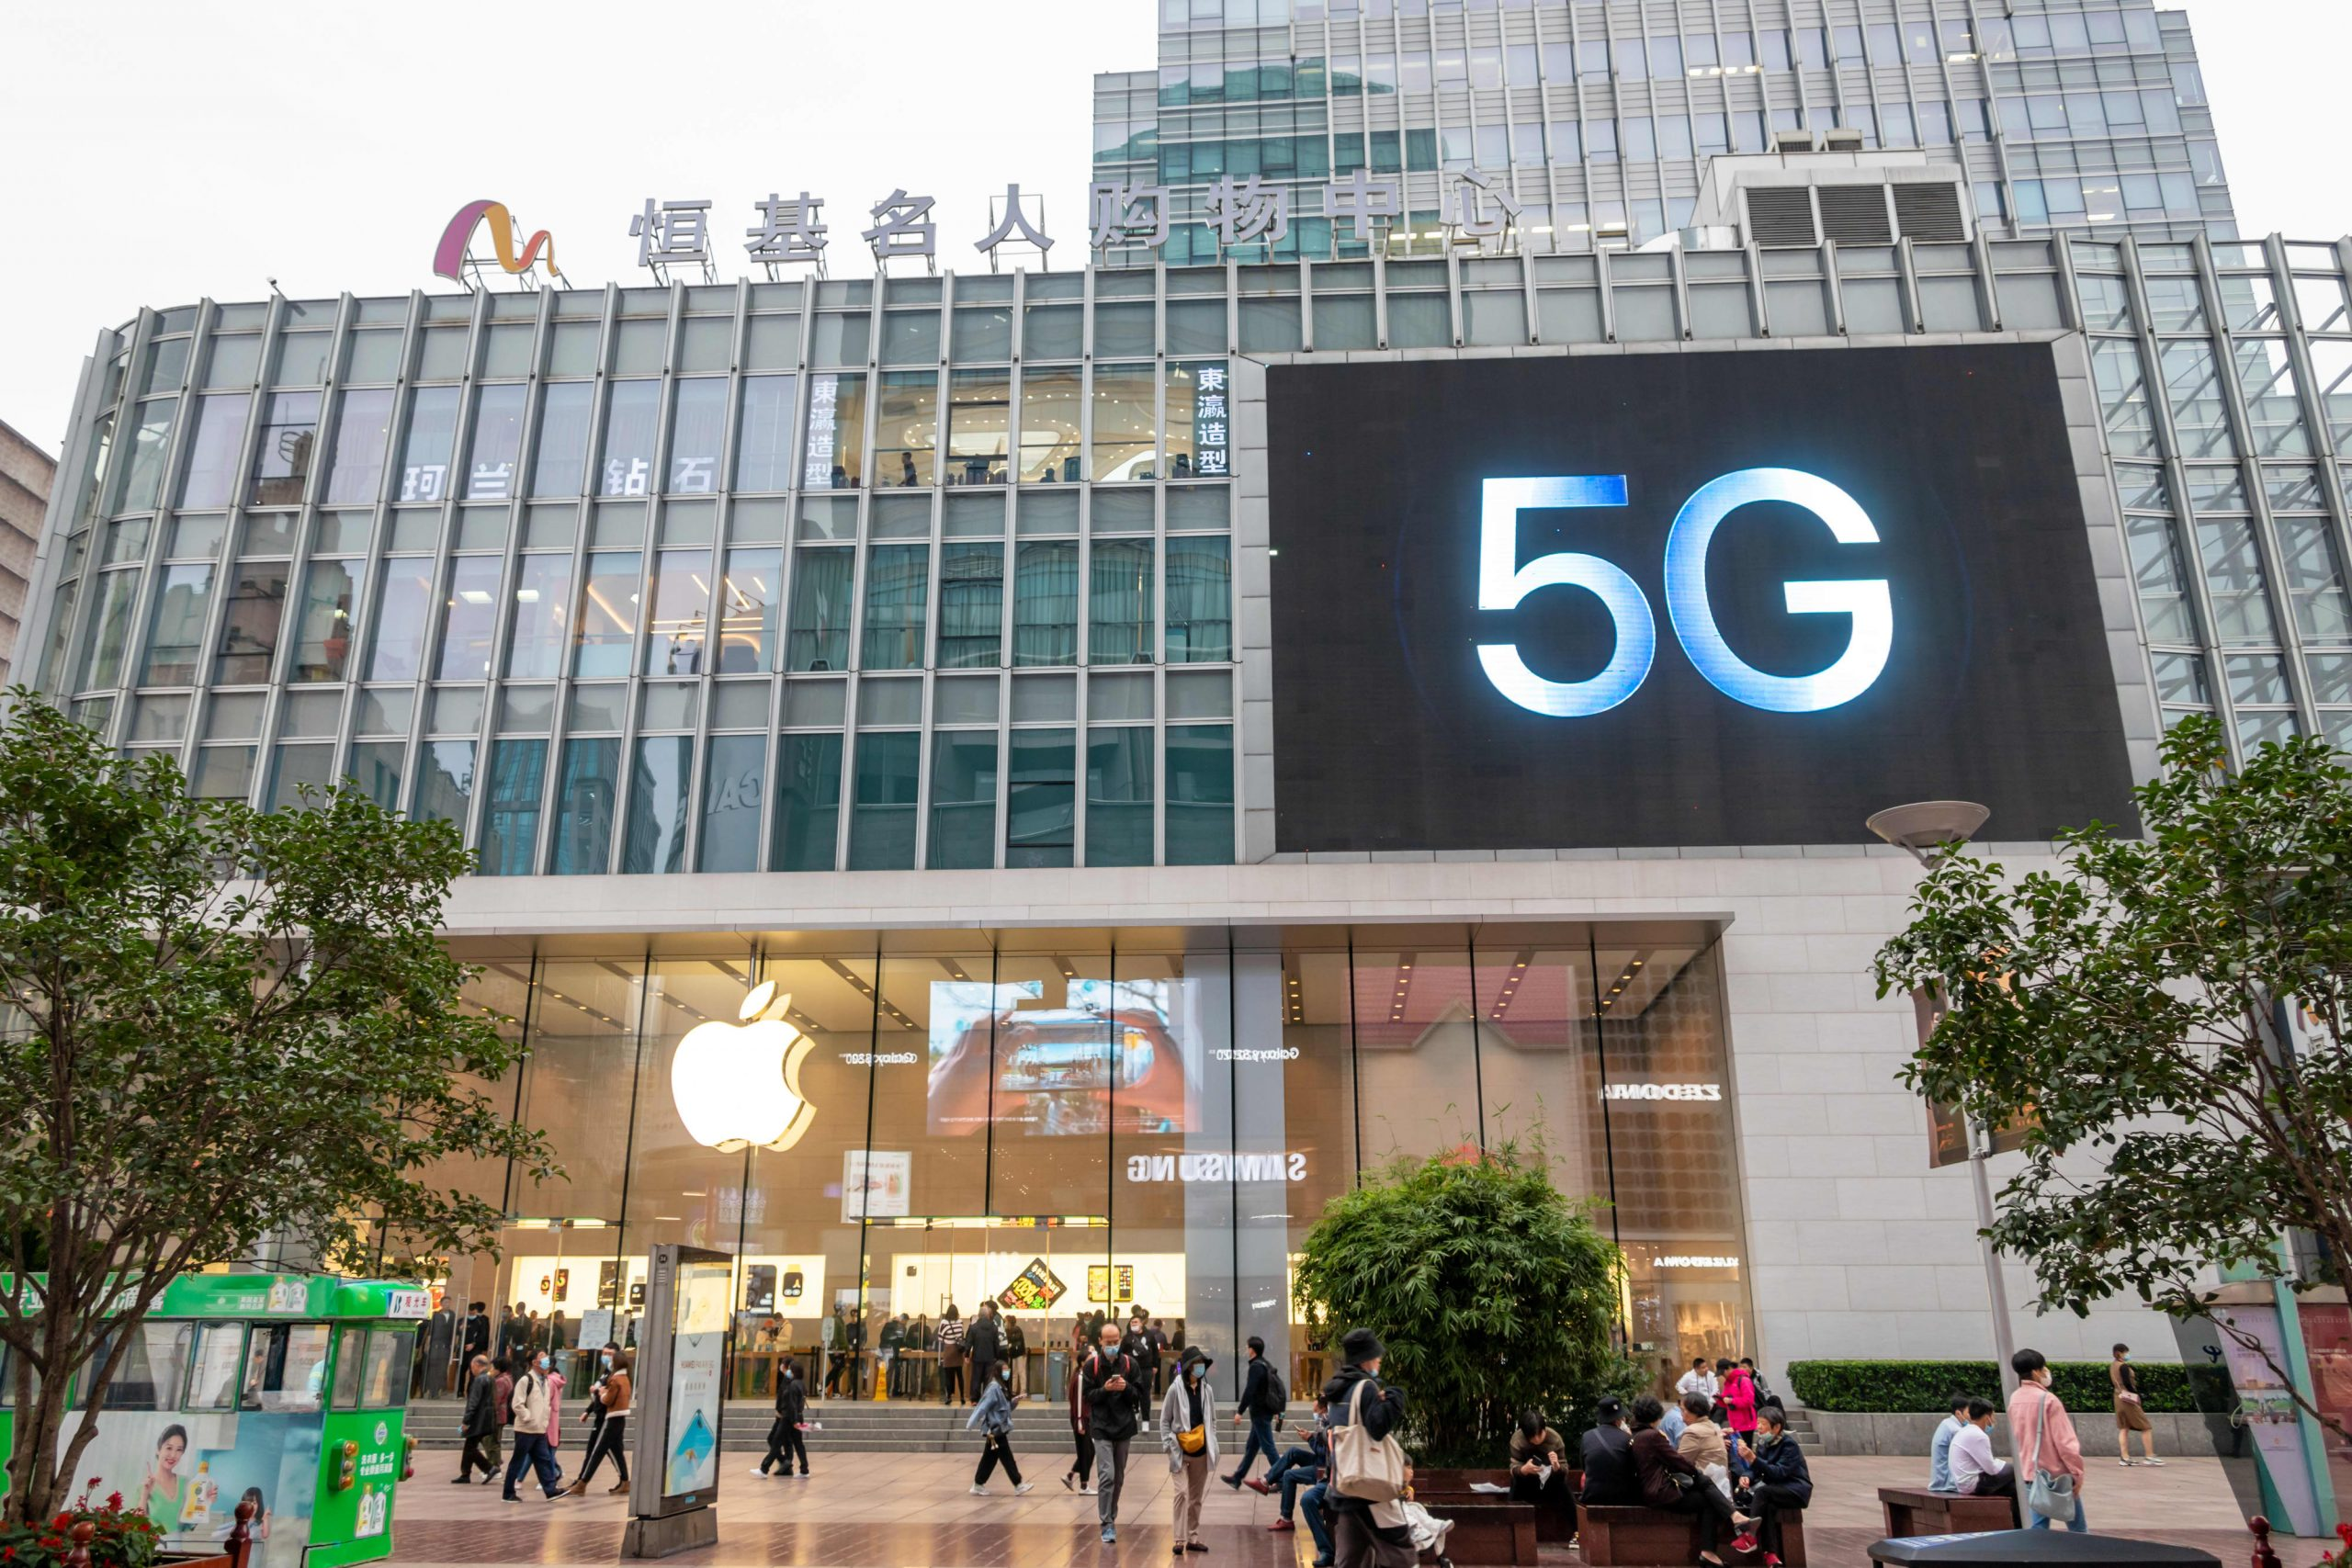 Jim Cramer says 5G is gaining momentum, reveals favourite associated shares